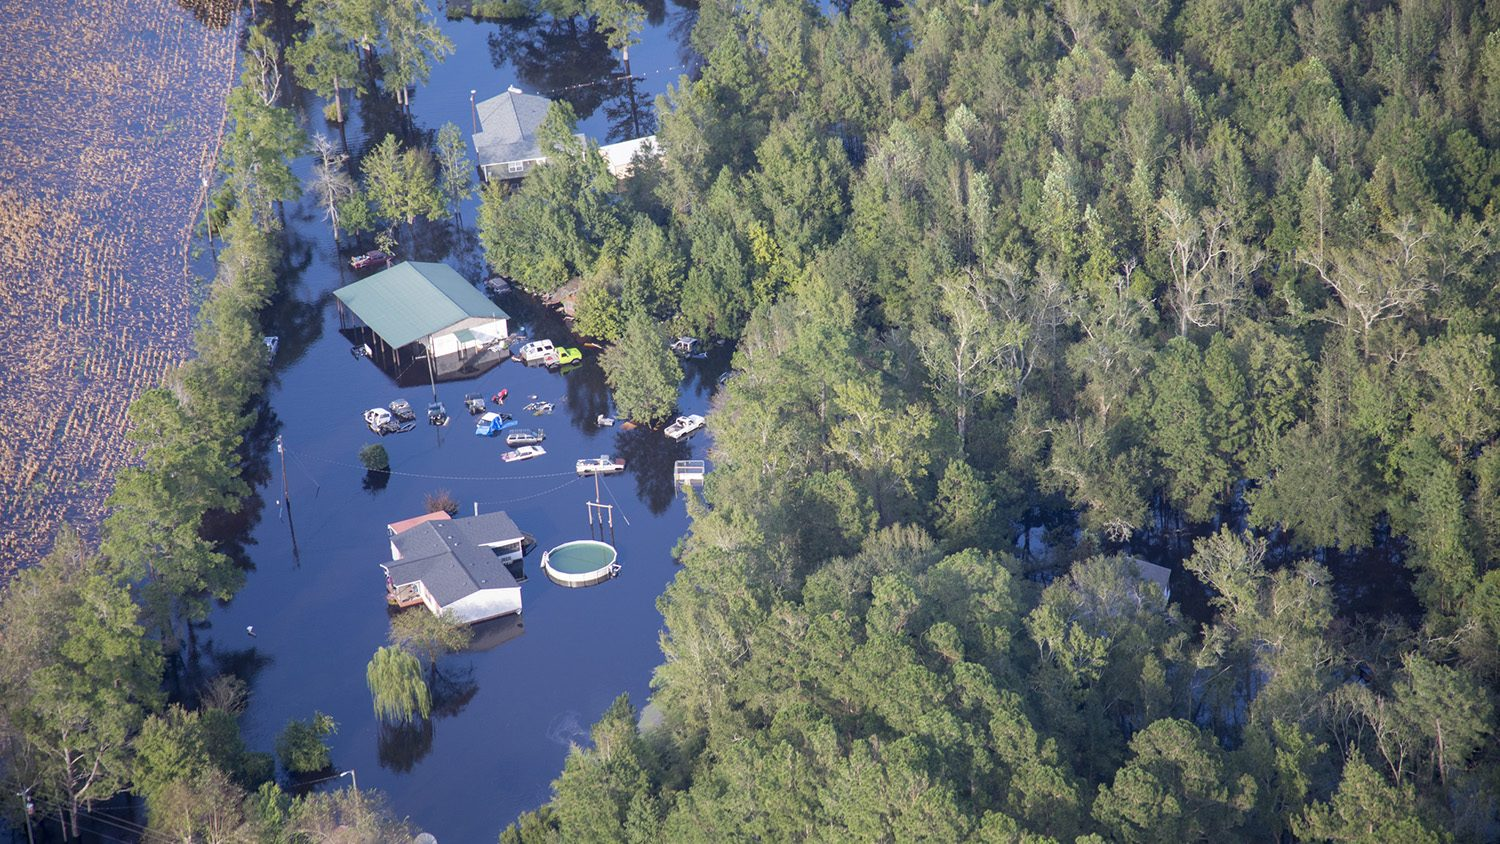 Hurricane Florence causes the Cape Fear River to flood, nearly submerging homes, above ground swimming pools, and vehicles.